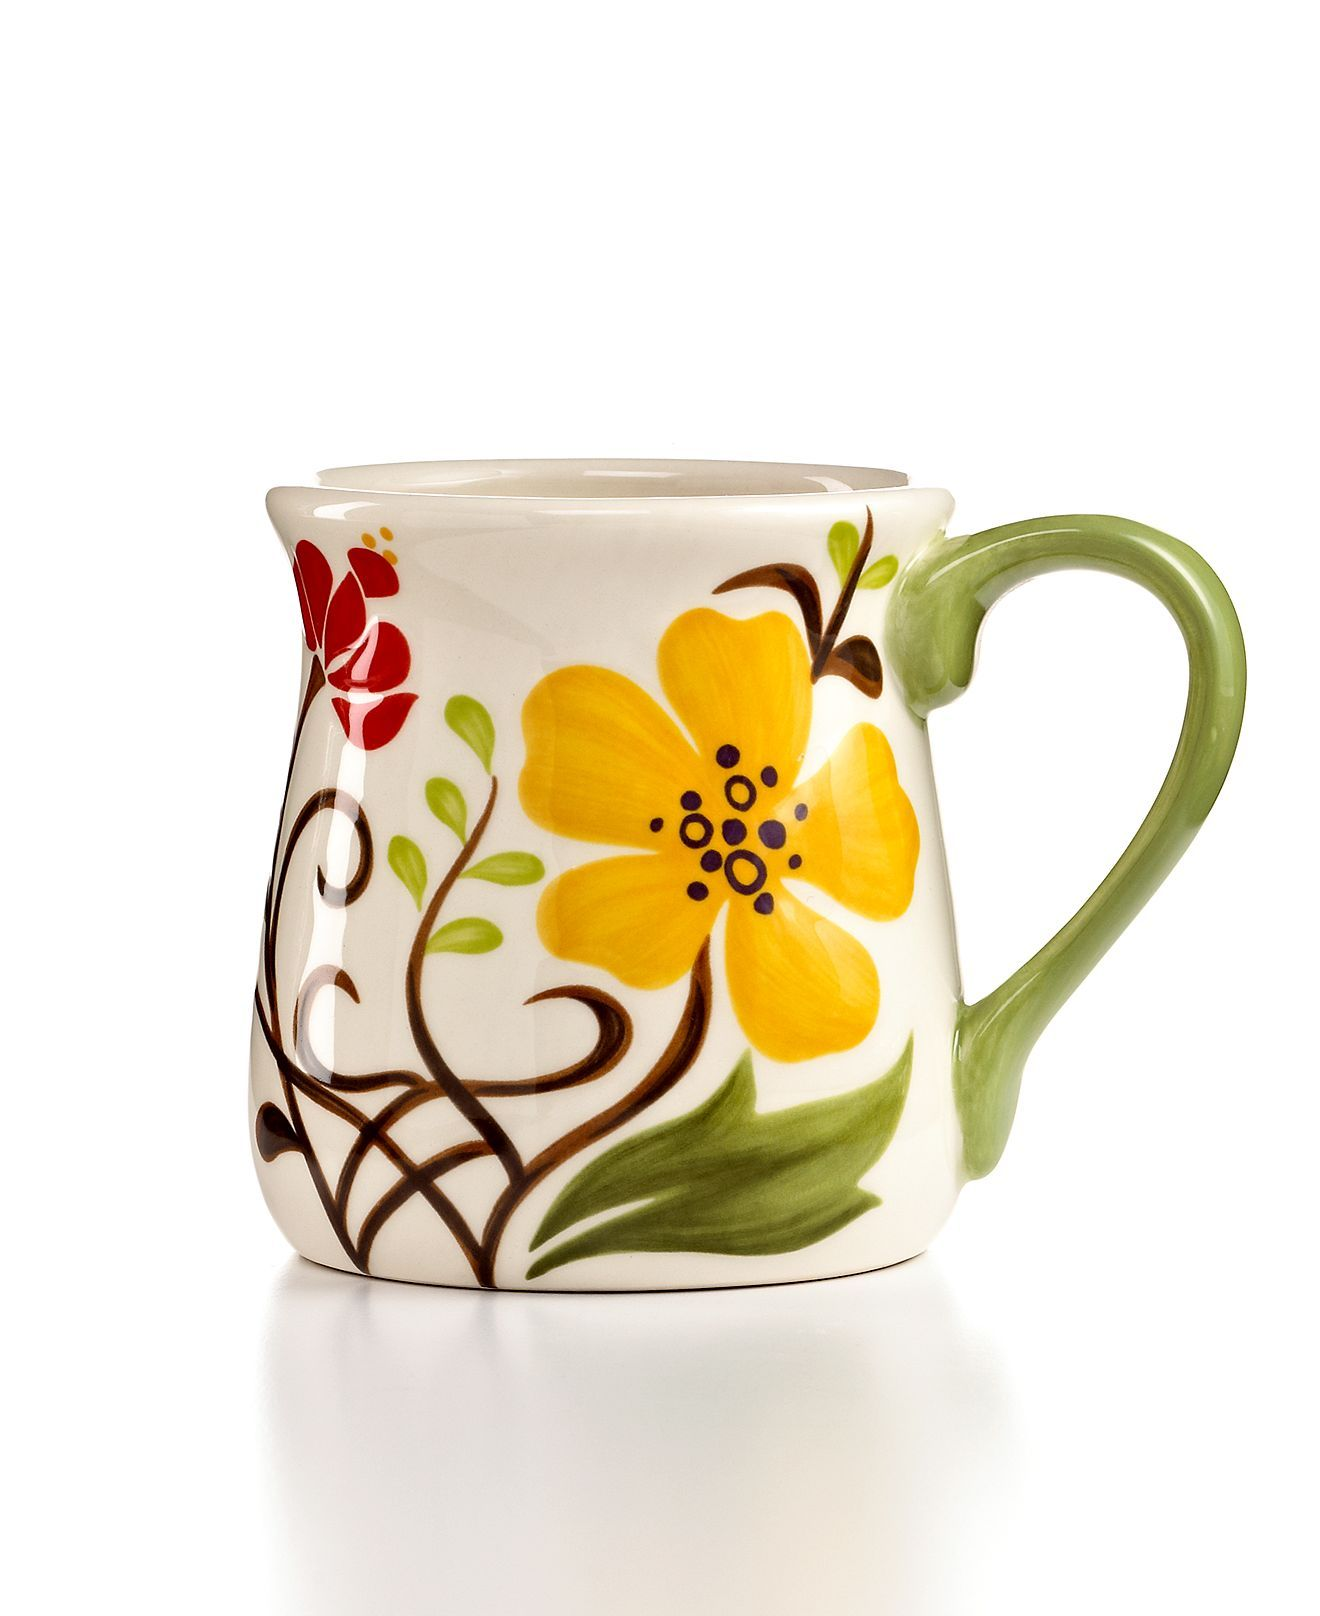 Vida by Espana Dinnerware Jardine Mug - SALE u0026 CLOSEOUT - Dining u0026 Entertaining -  sc 1 st  Pinterest & Vida by Espana Dinnerware Jardine Mug - SALE u0026 CLOSEOUT - Dining ...